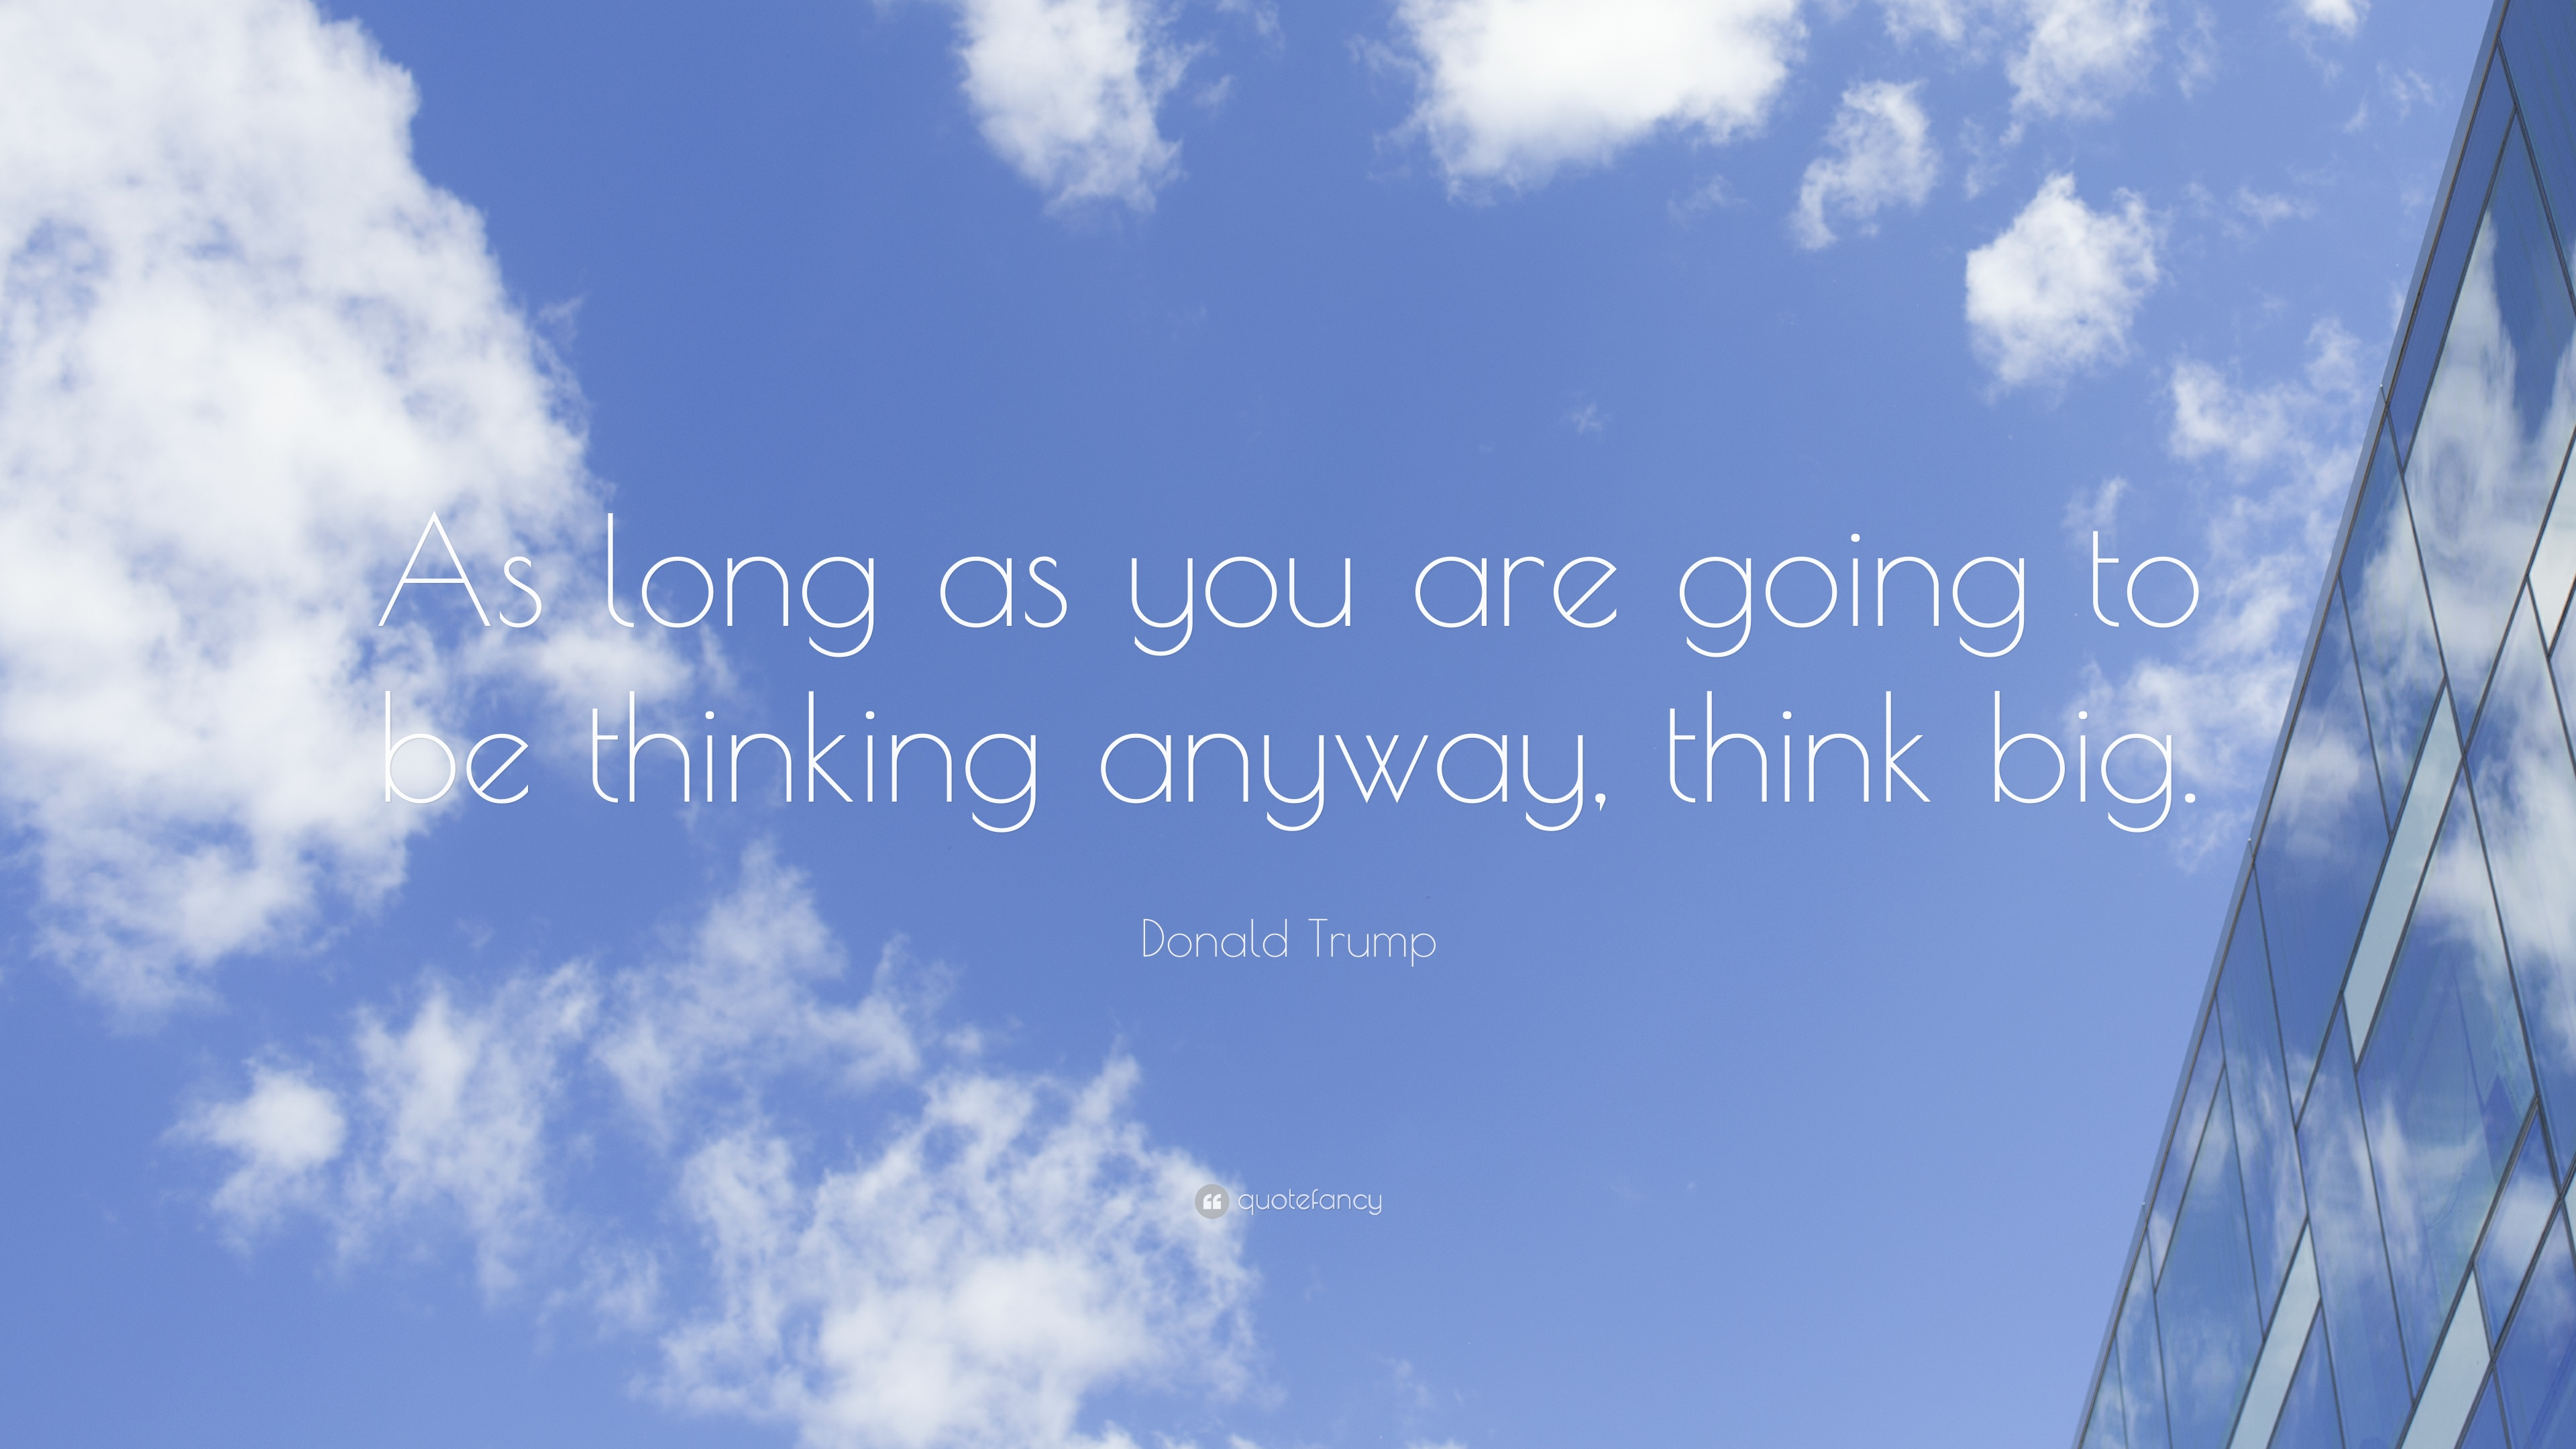 donald trump quote as long as you are going to be